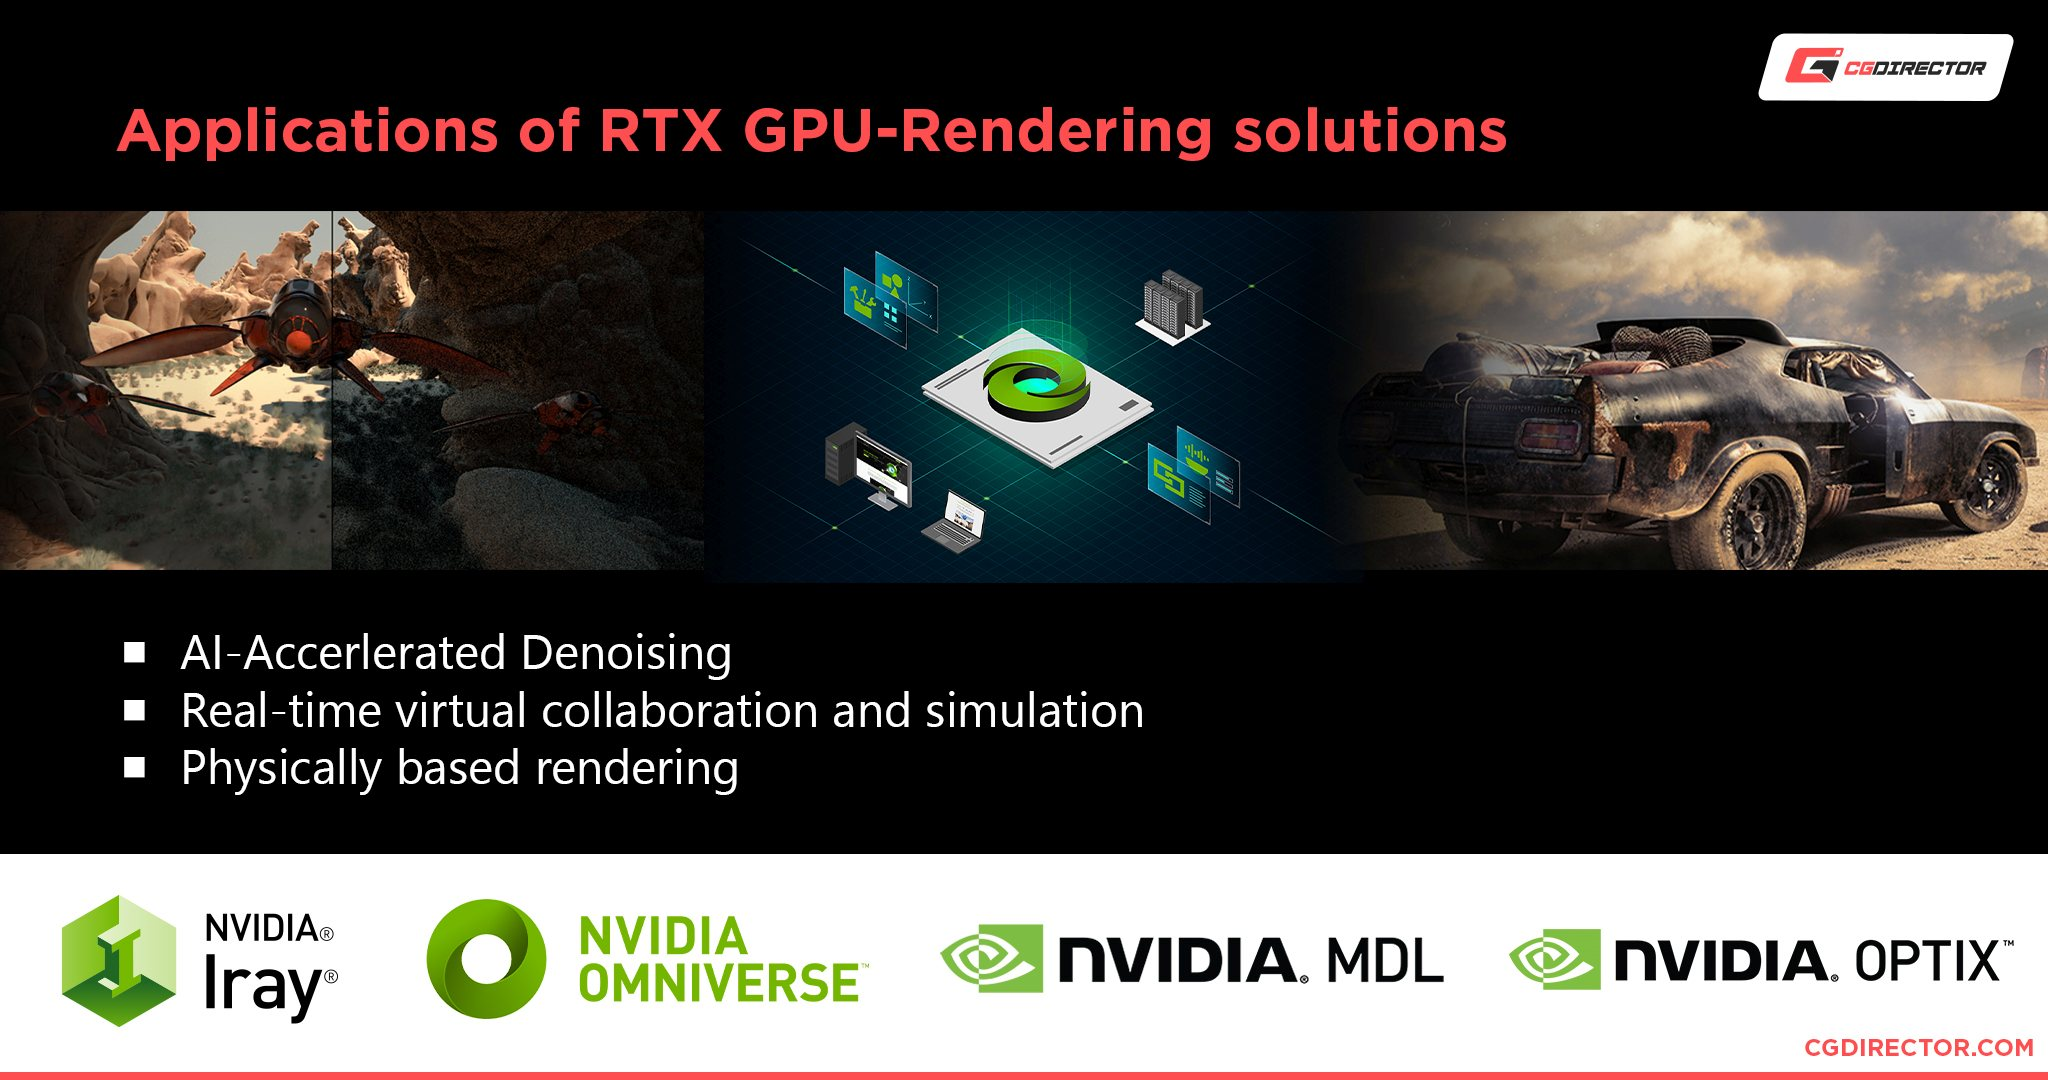 Nvidia-Developed RTX GPU-Rendering Solutions